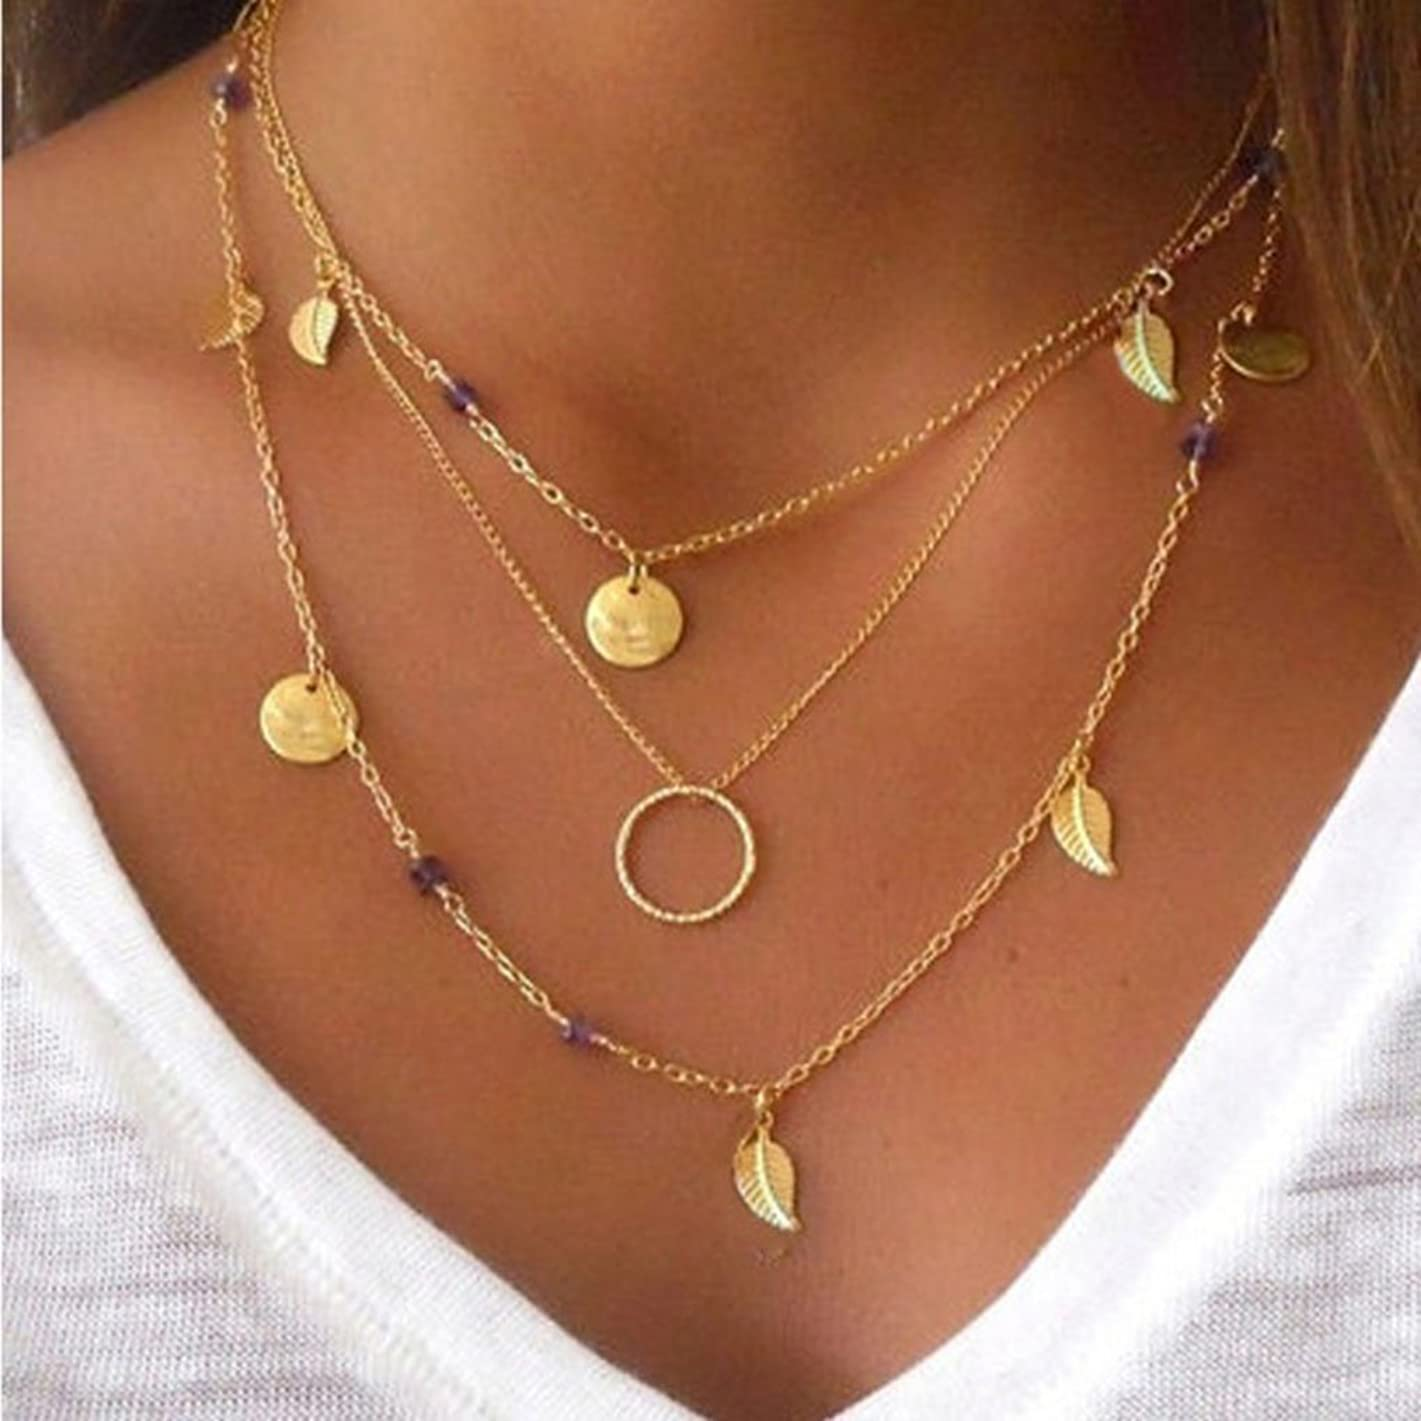 CanB Boho Layered Pendant Necklaces Leaf Hoop Sequins Beads Chain Jewelry for Women